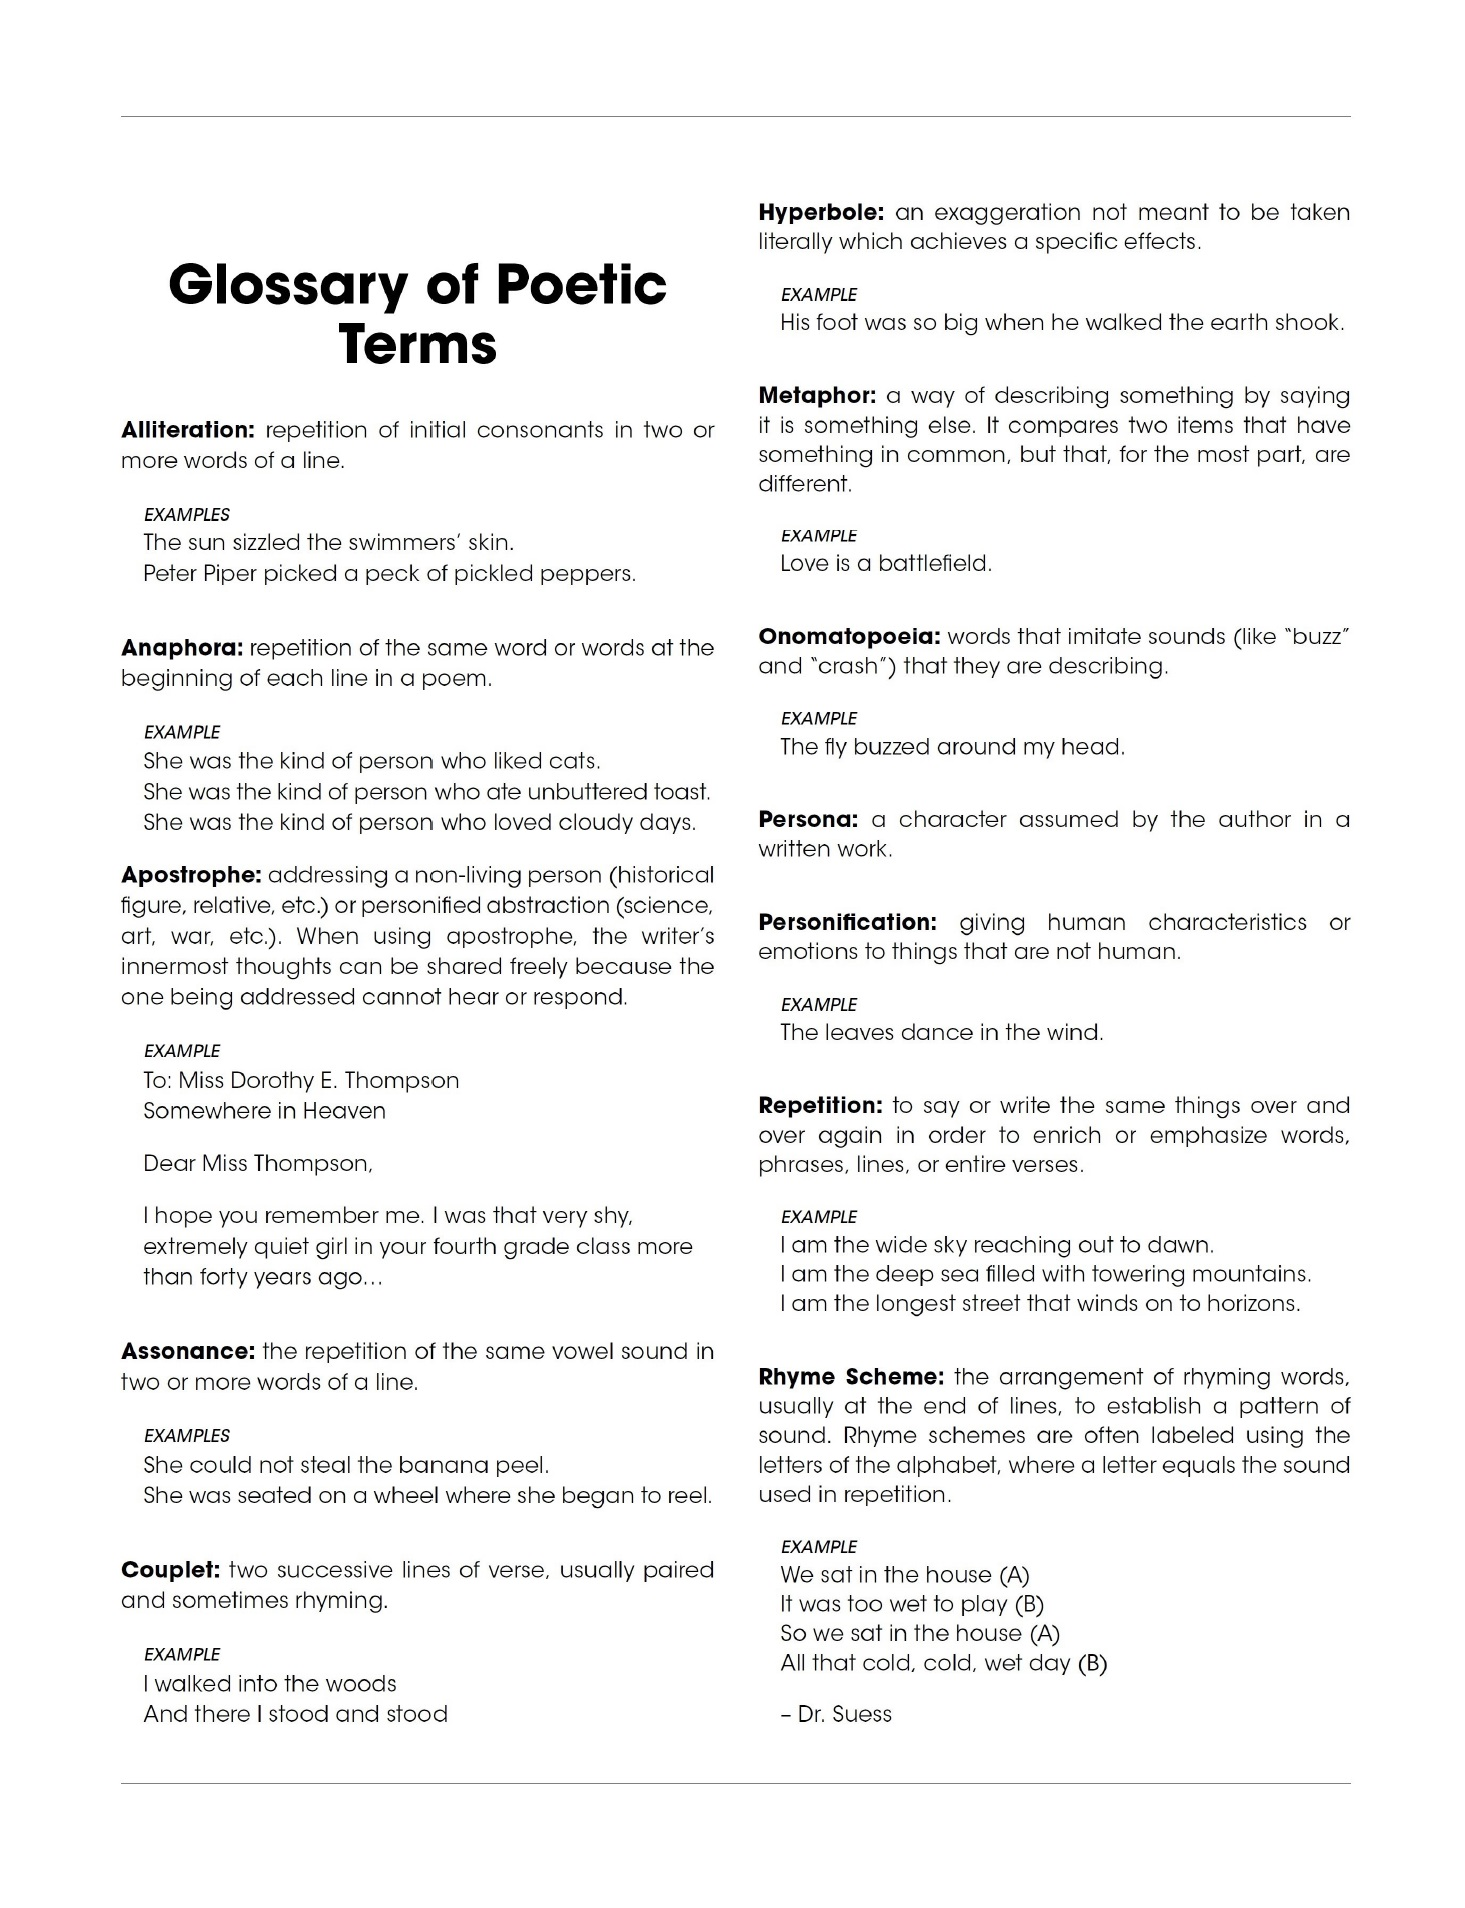 Definitions & Poetry Terms